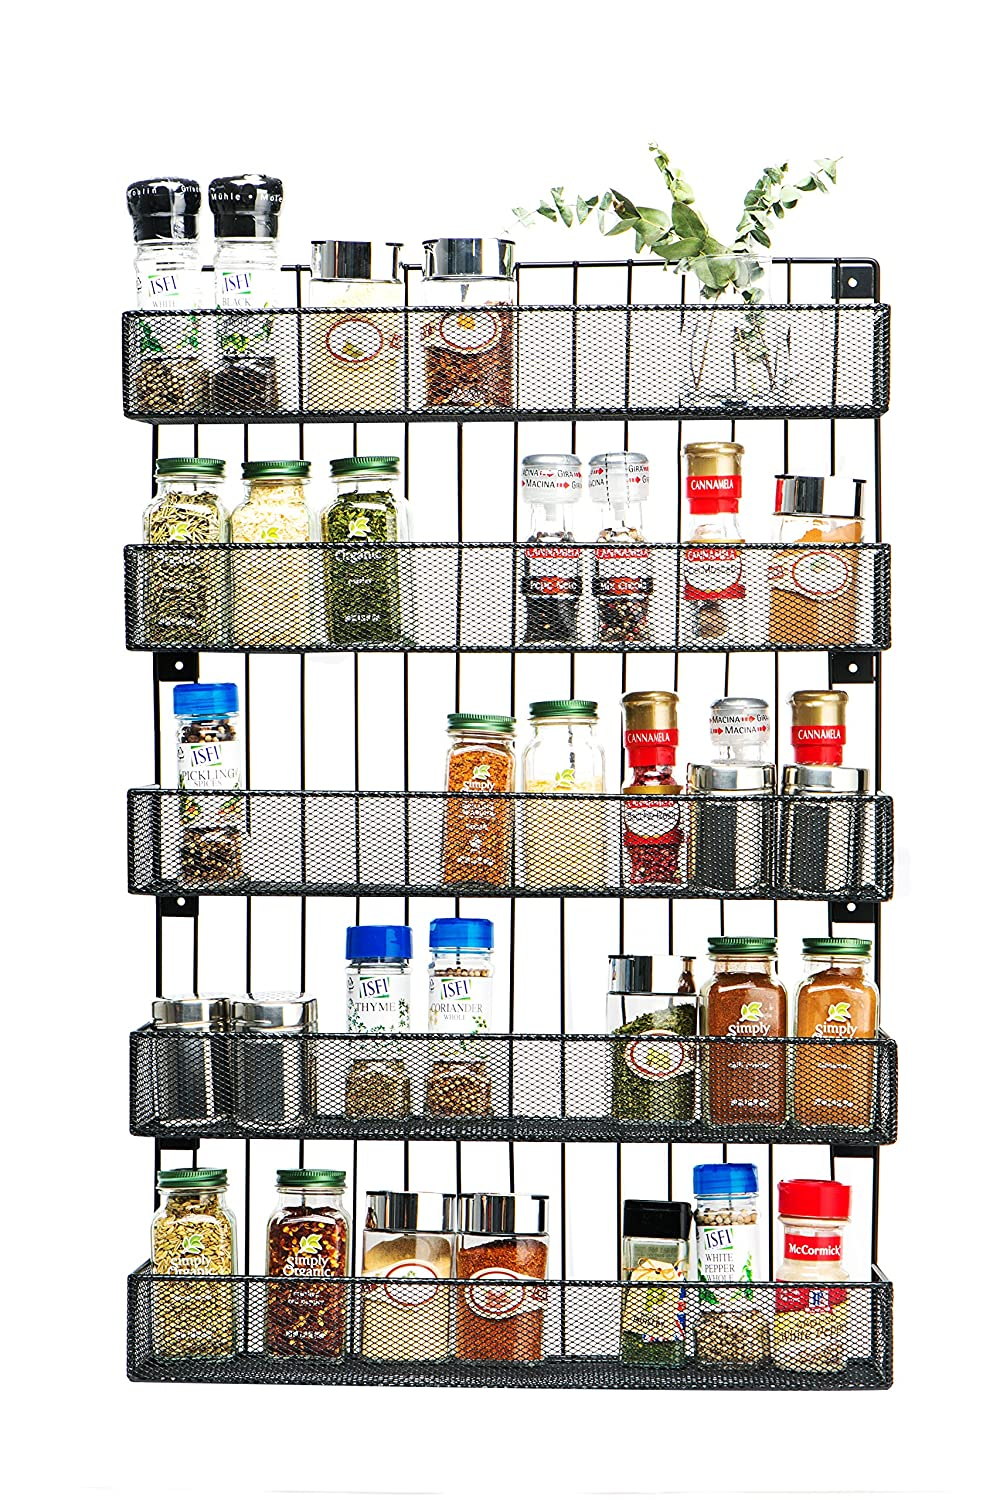 JackCubeDesign Wall Mount Spice Rack 5 tier Kitchen Countertop Worktop Display Organiser Spice Bottles Holder Stand Shelves(44.7 x 10.4 x 67.8 cm) – :MK419A